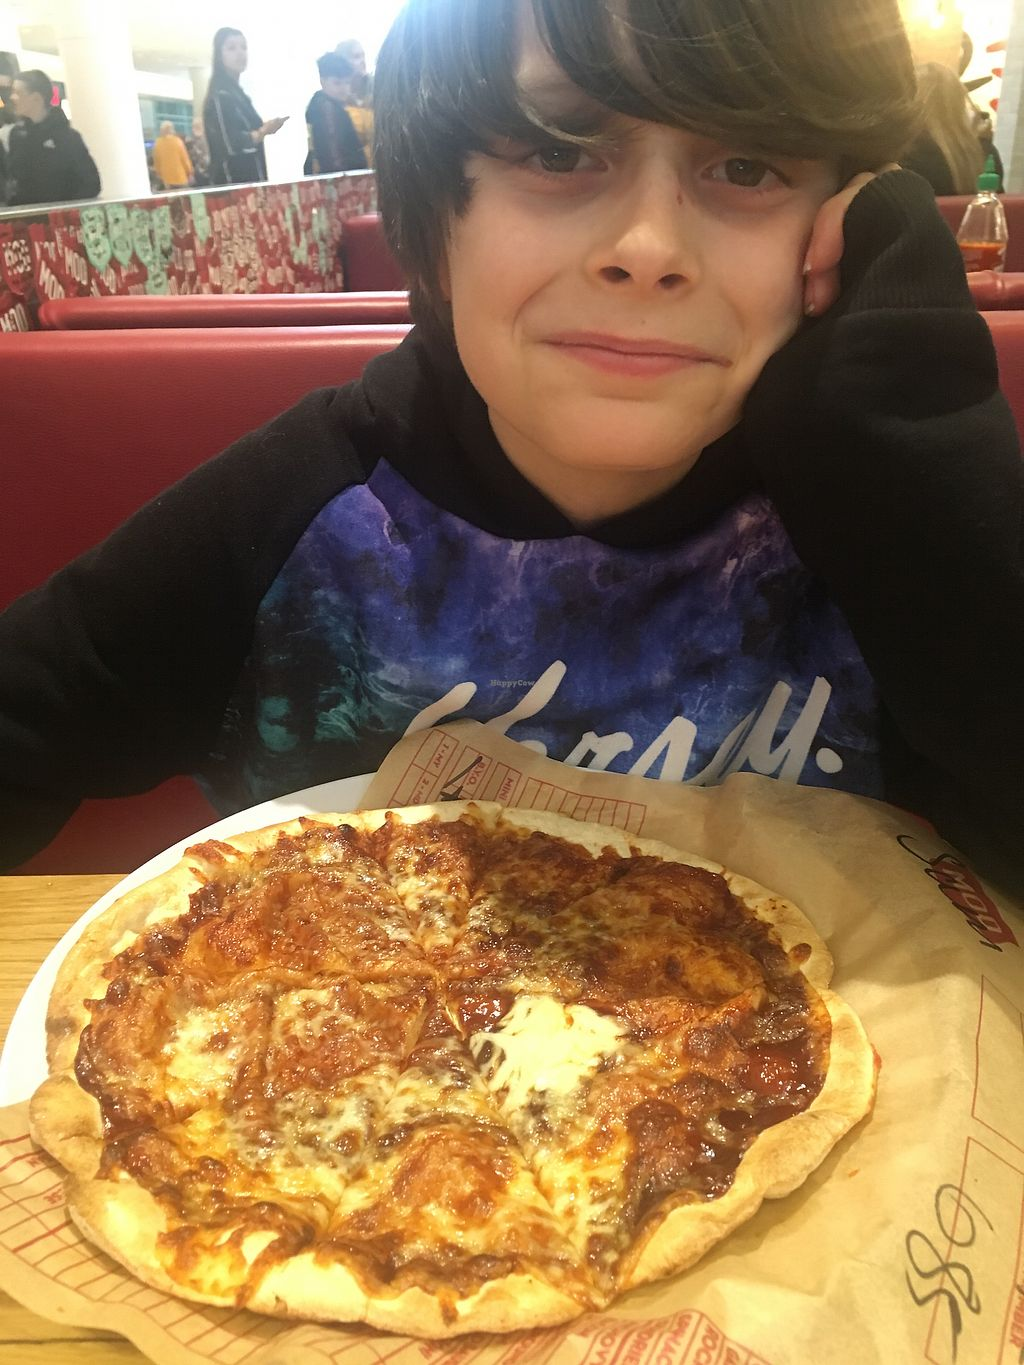 """Photo of Mod Pizza  by <a href=""""/members/profile/SamanthaParkin"""">SamanthaParkin</a> <br/>Vegetarian BBQ pizza for this dude <br/> April 13, 2018  - <a href='/contact/abuse/image/87204/385035'>Report</a>"""